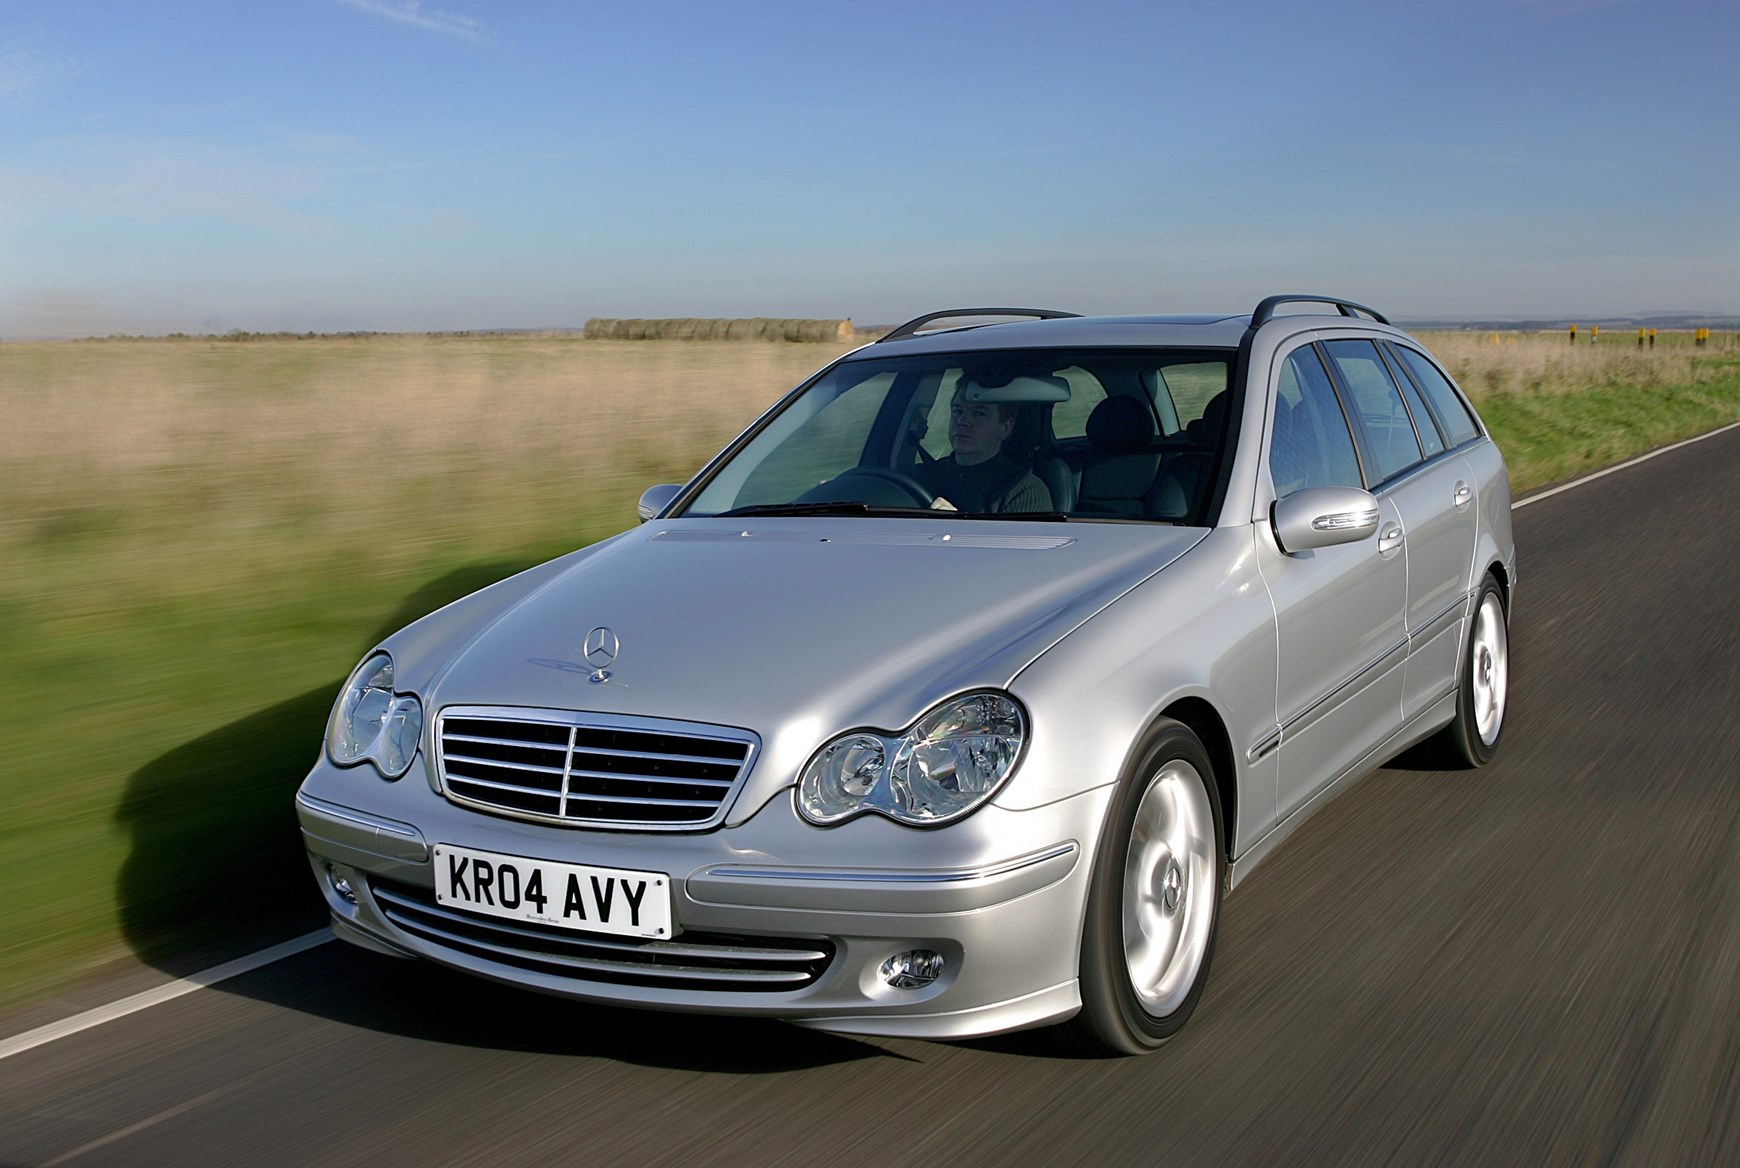 Used Mercedes-Benz C-Class Estate (2000 - 2007) Engines